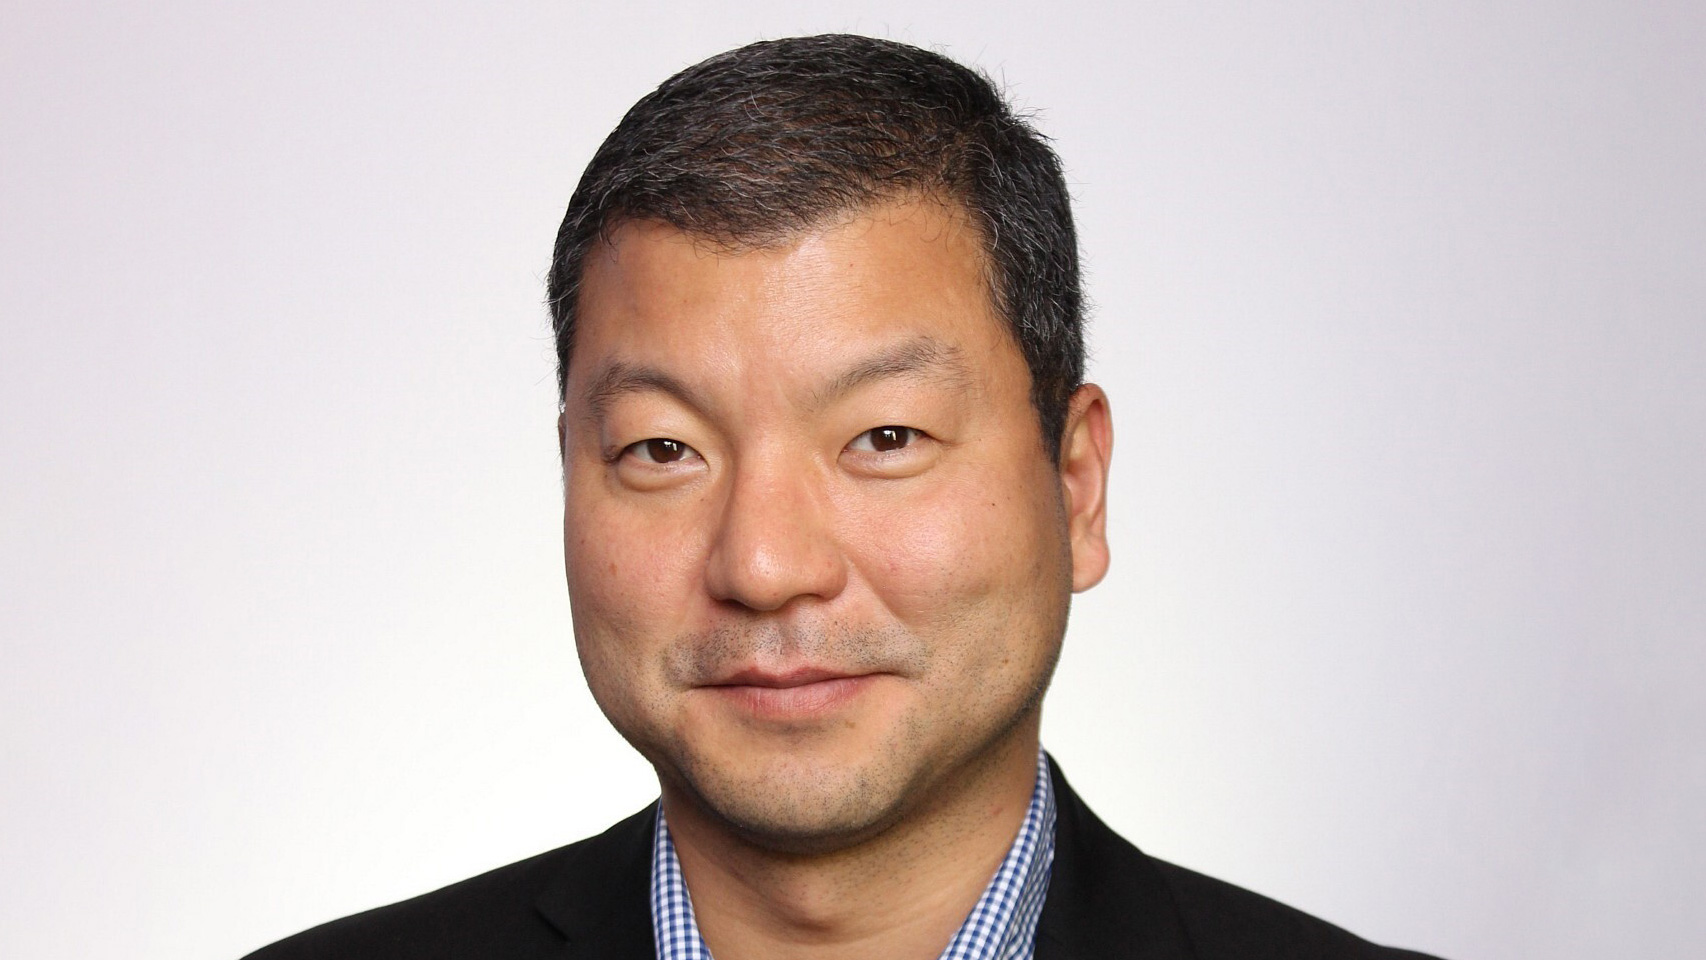 Jason Lim previously oversaw MediaCom's performance-based practice.